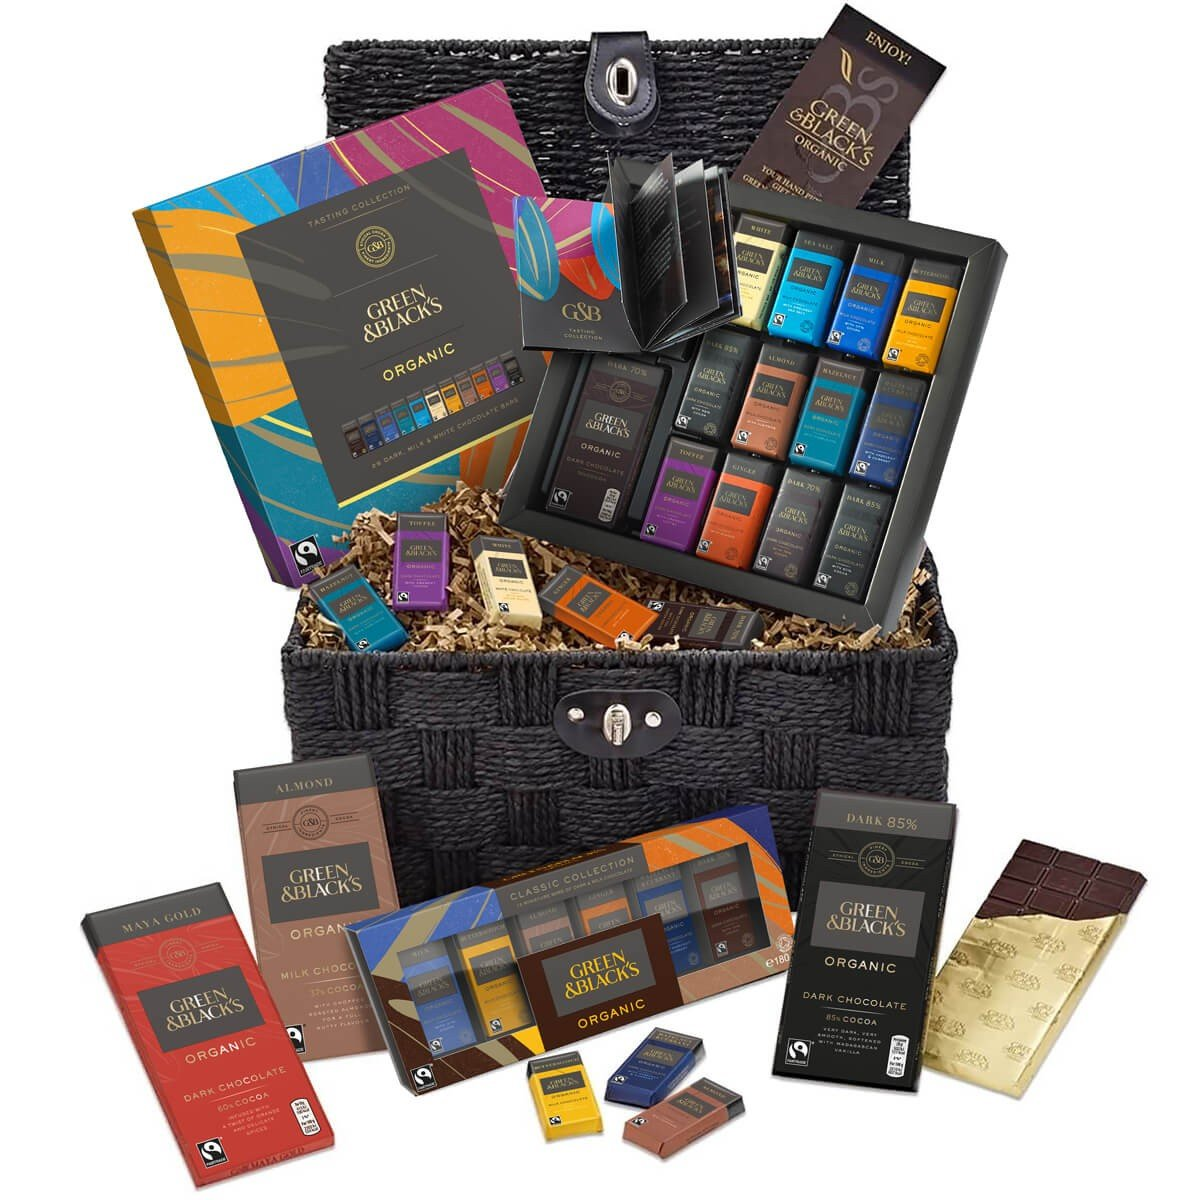 G&B's Chocolate Lovers Hamper Basket